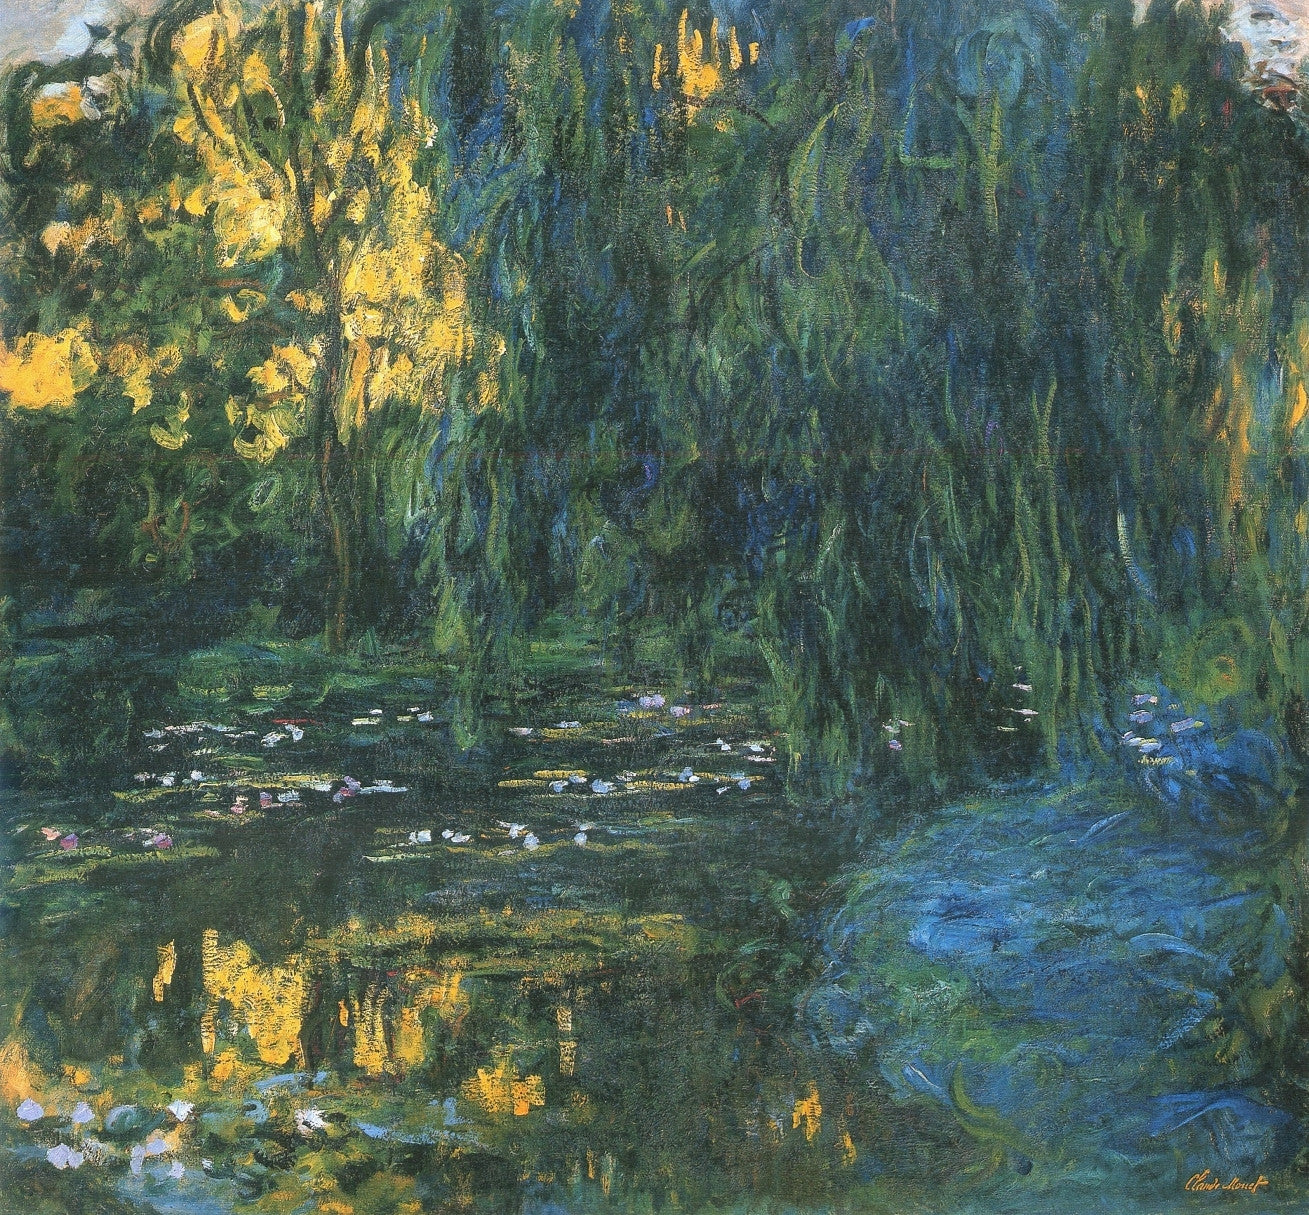 Claude Monet, Water Lily Pond and Weeping Willow